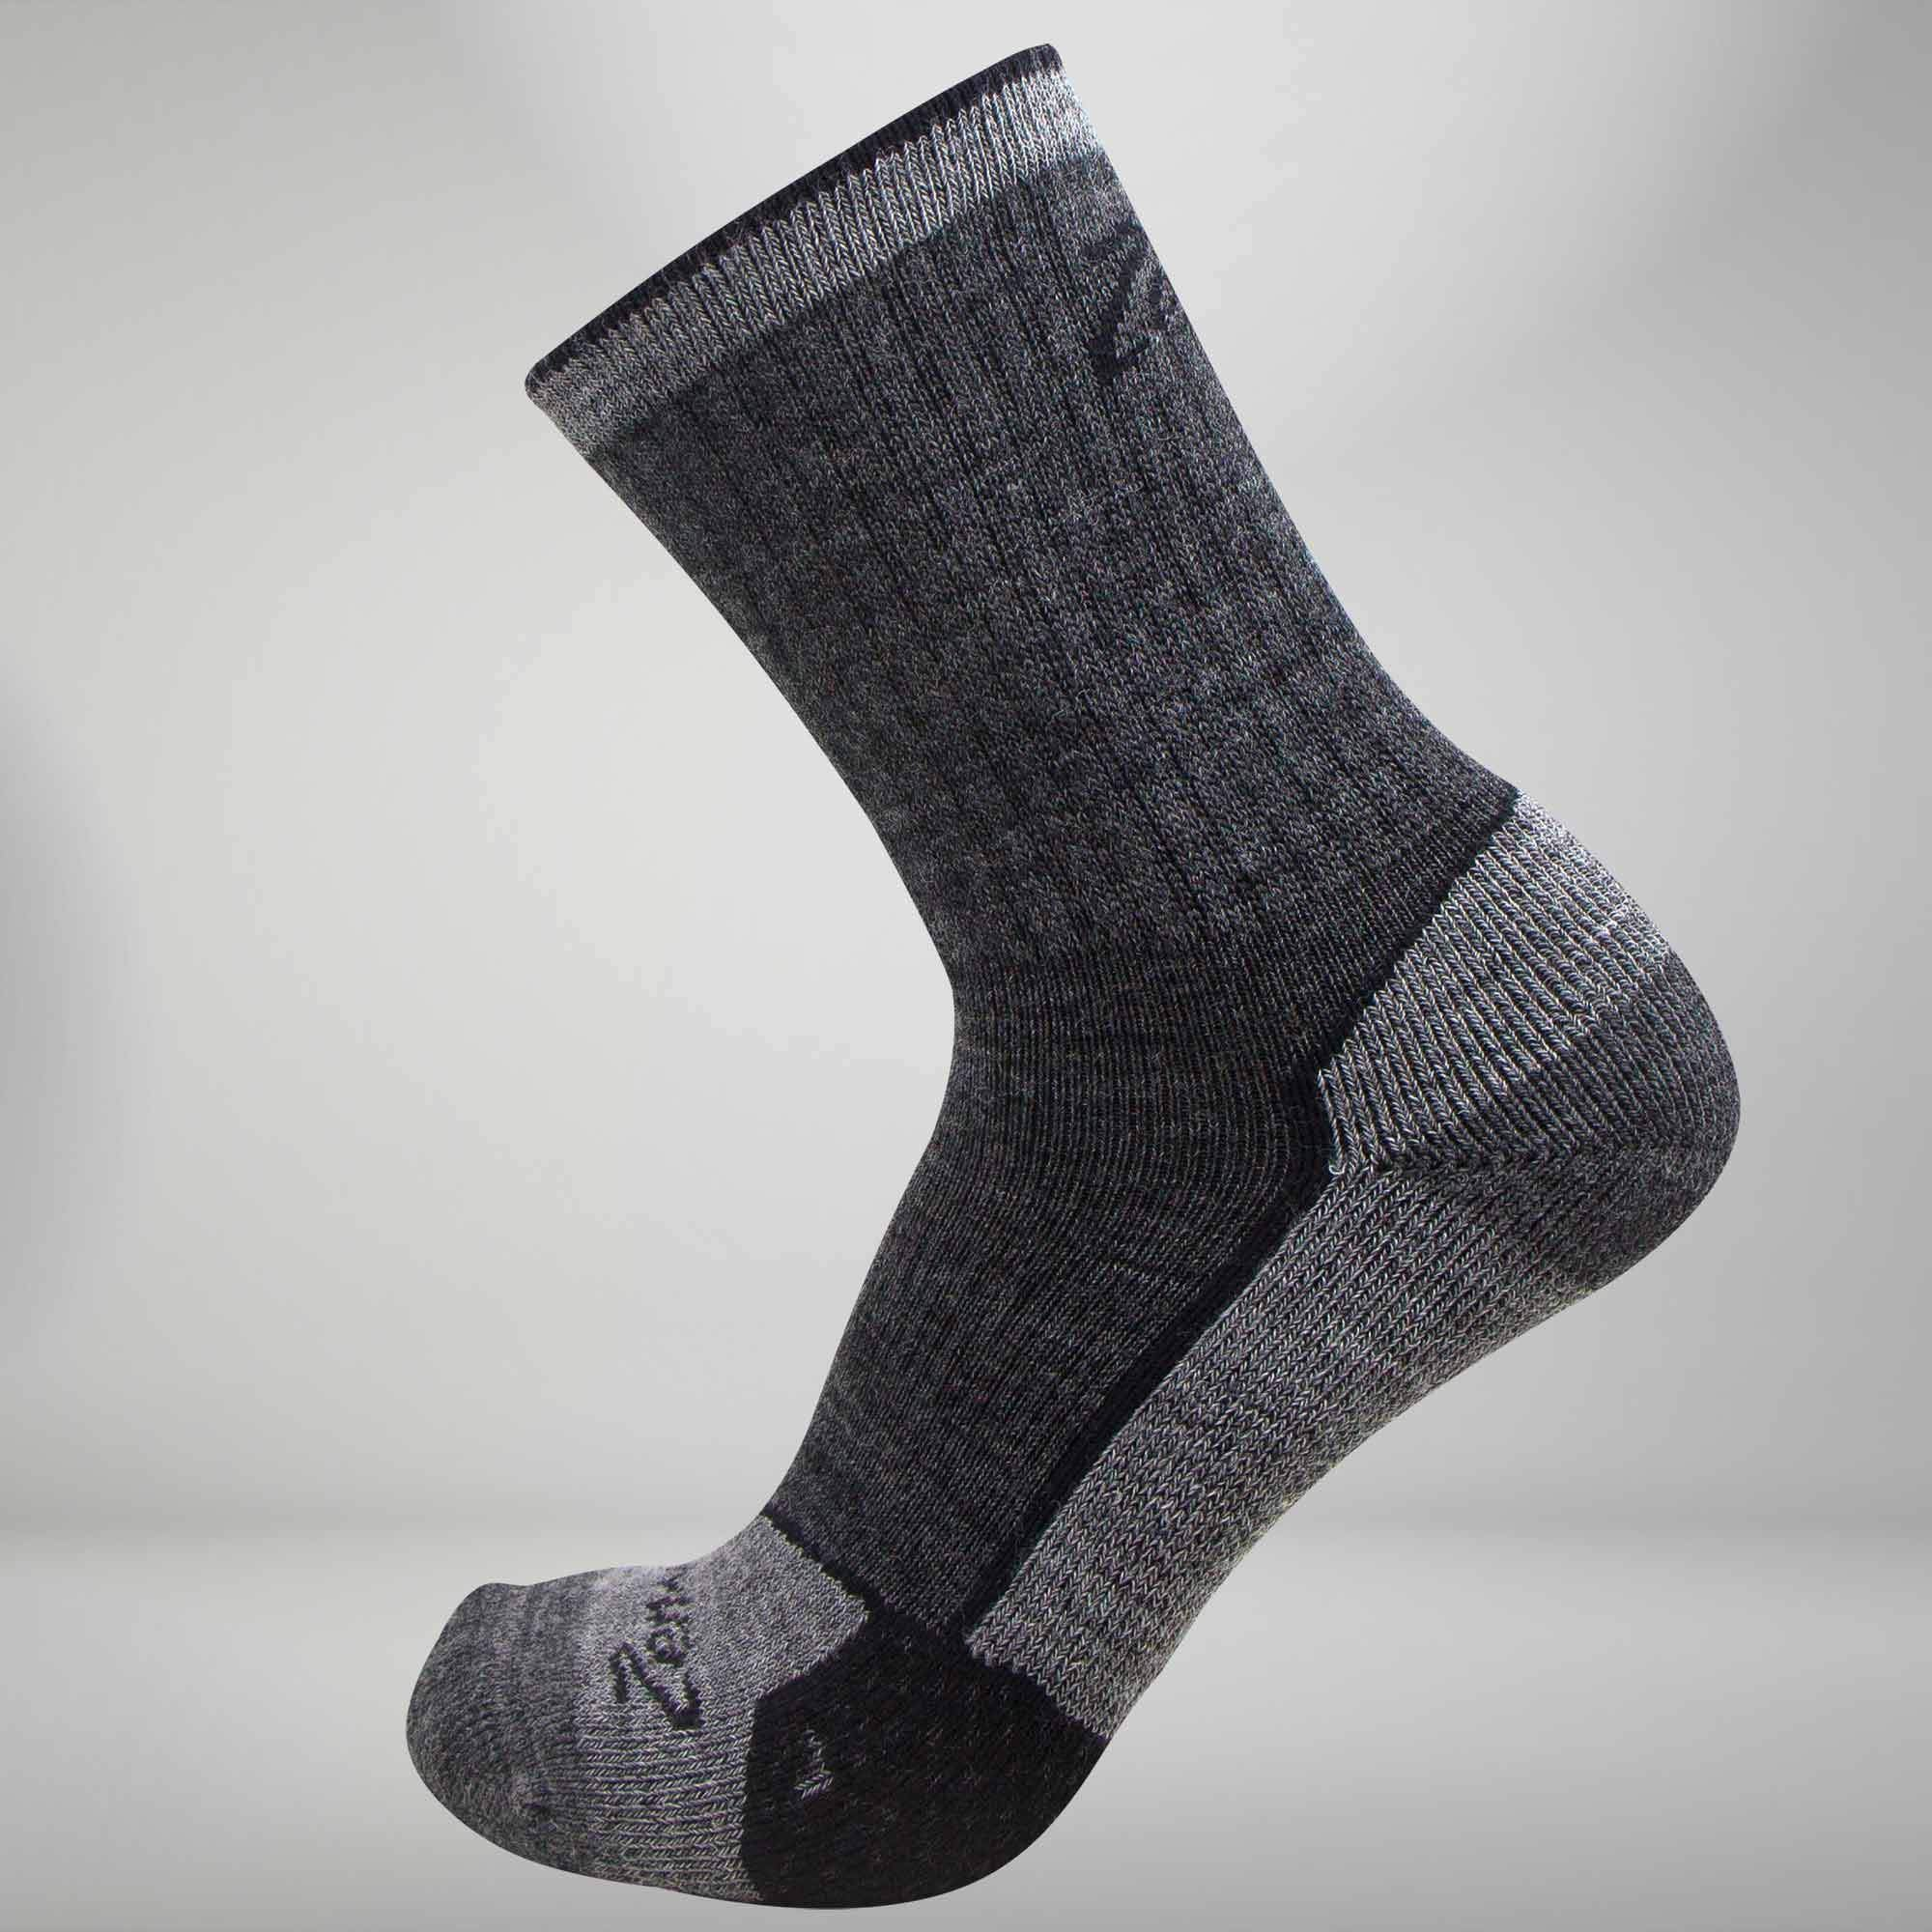 53c674c62a0 High Cushion Hiking Wool Running Socks - Hiking